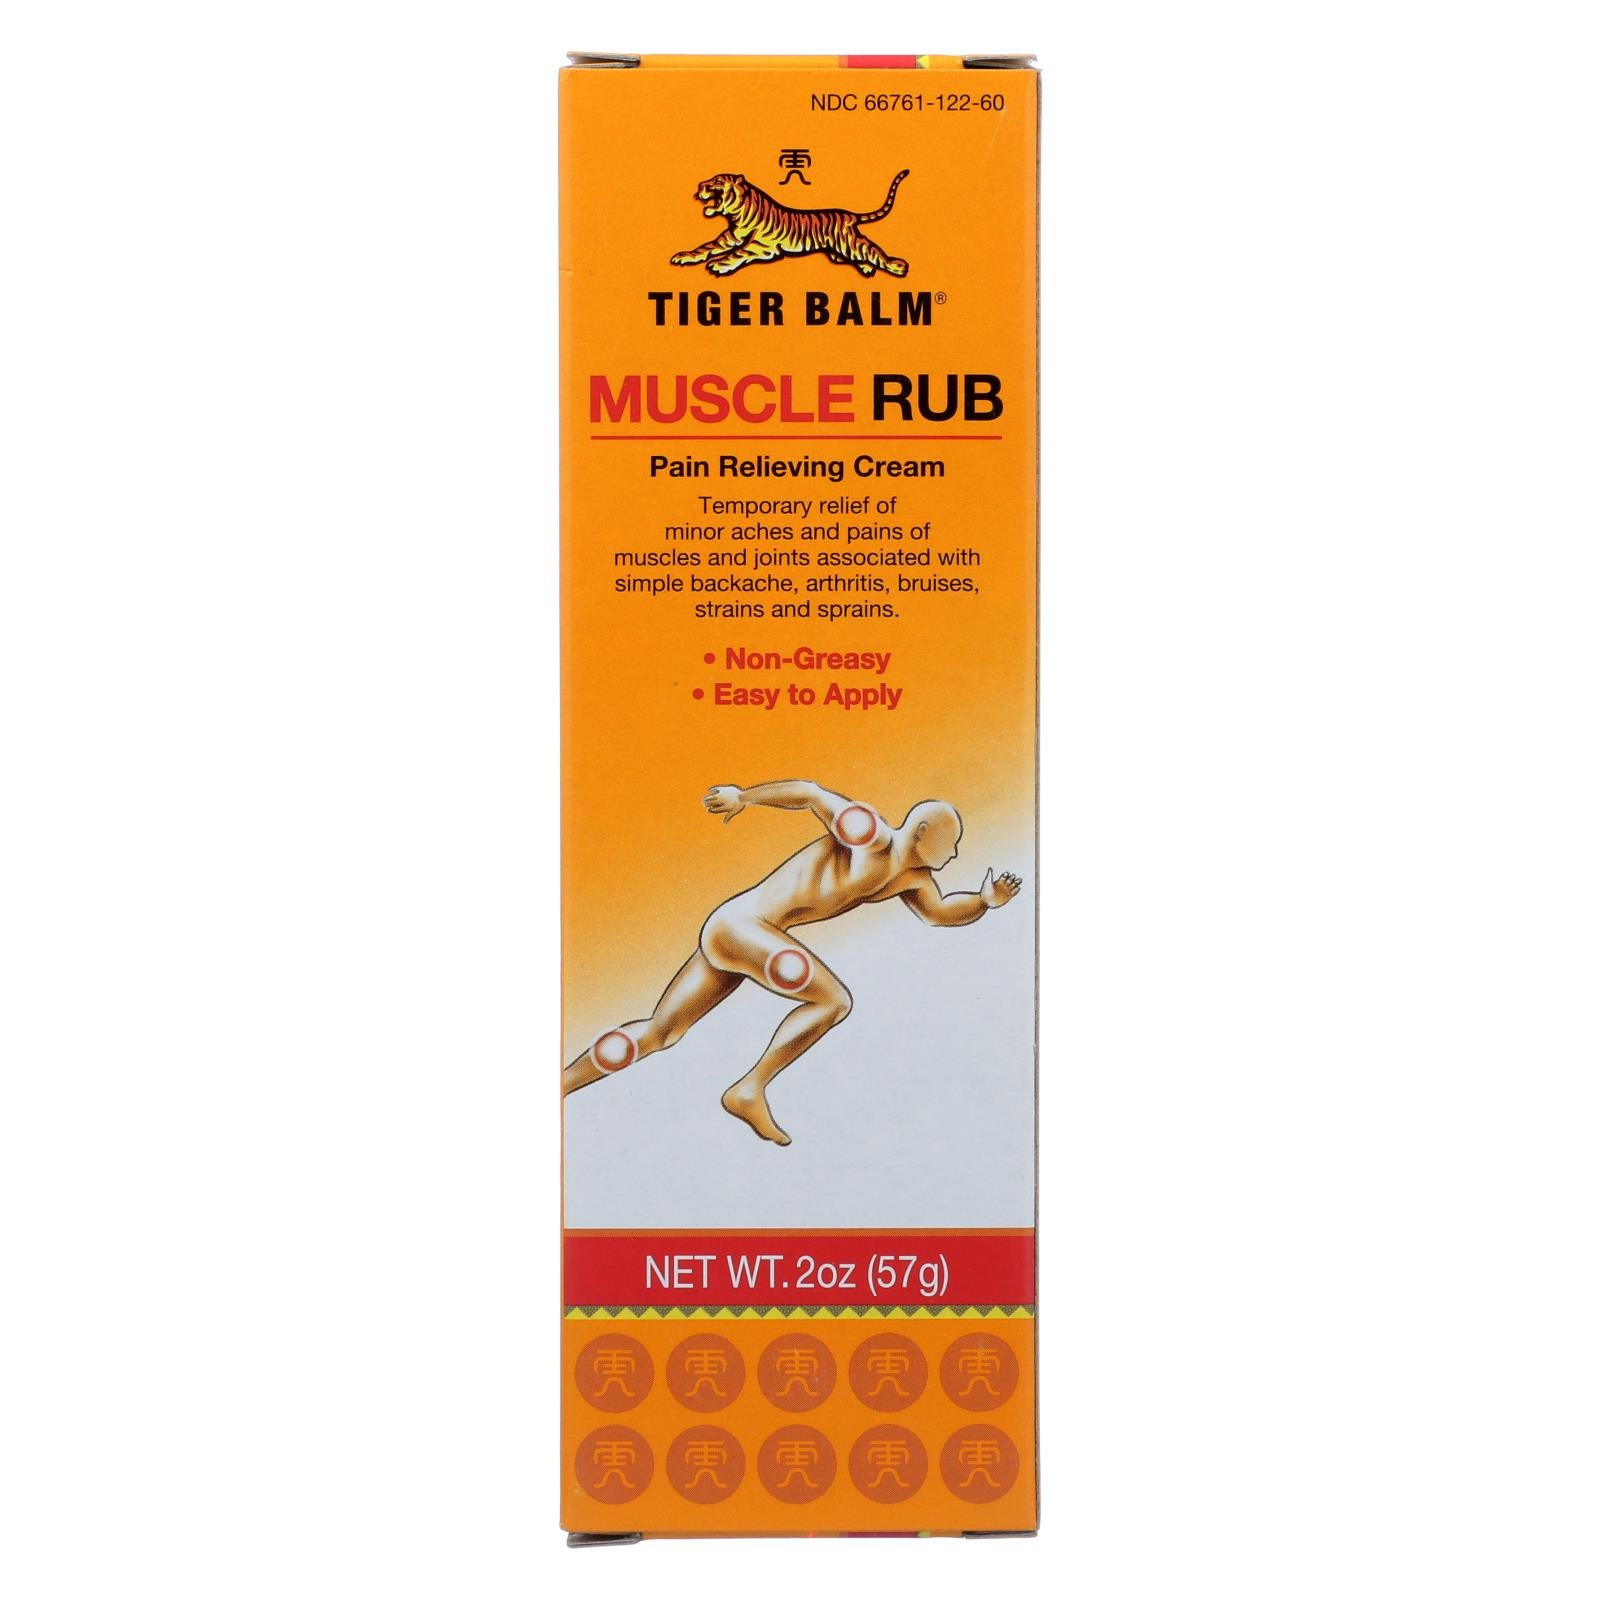 Tiger Balm Fast Relief Muscle Rub Topical Analgesic Cream - 2 Oz HG0959692